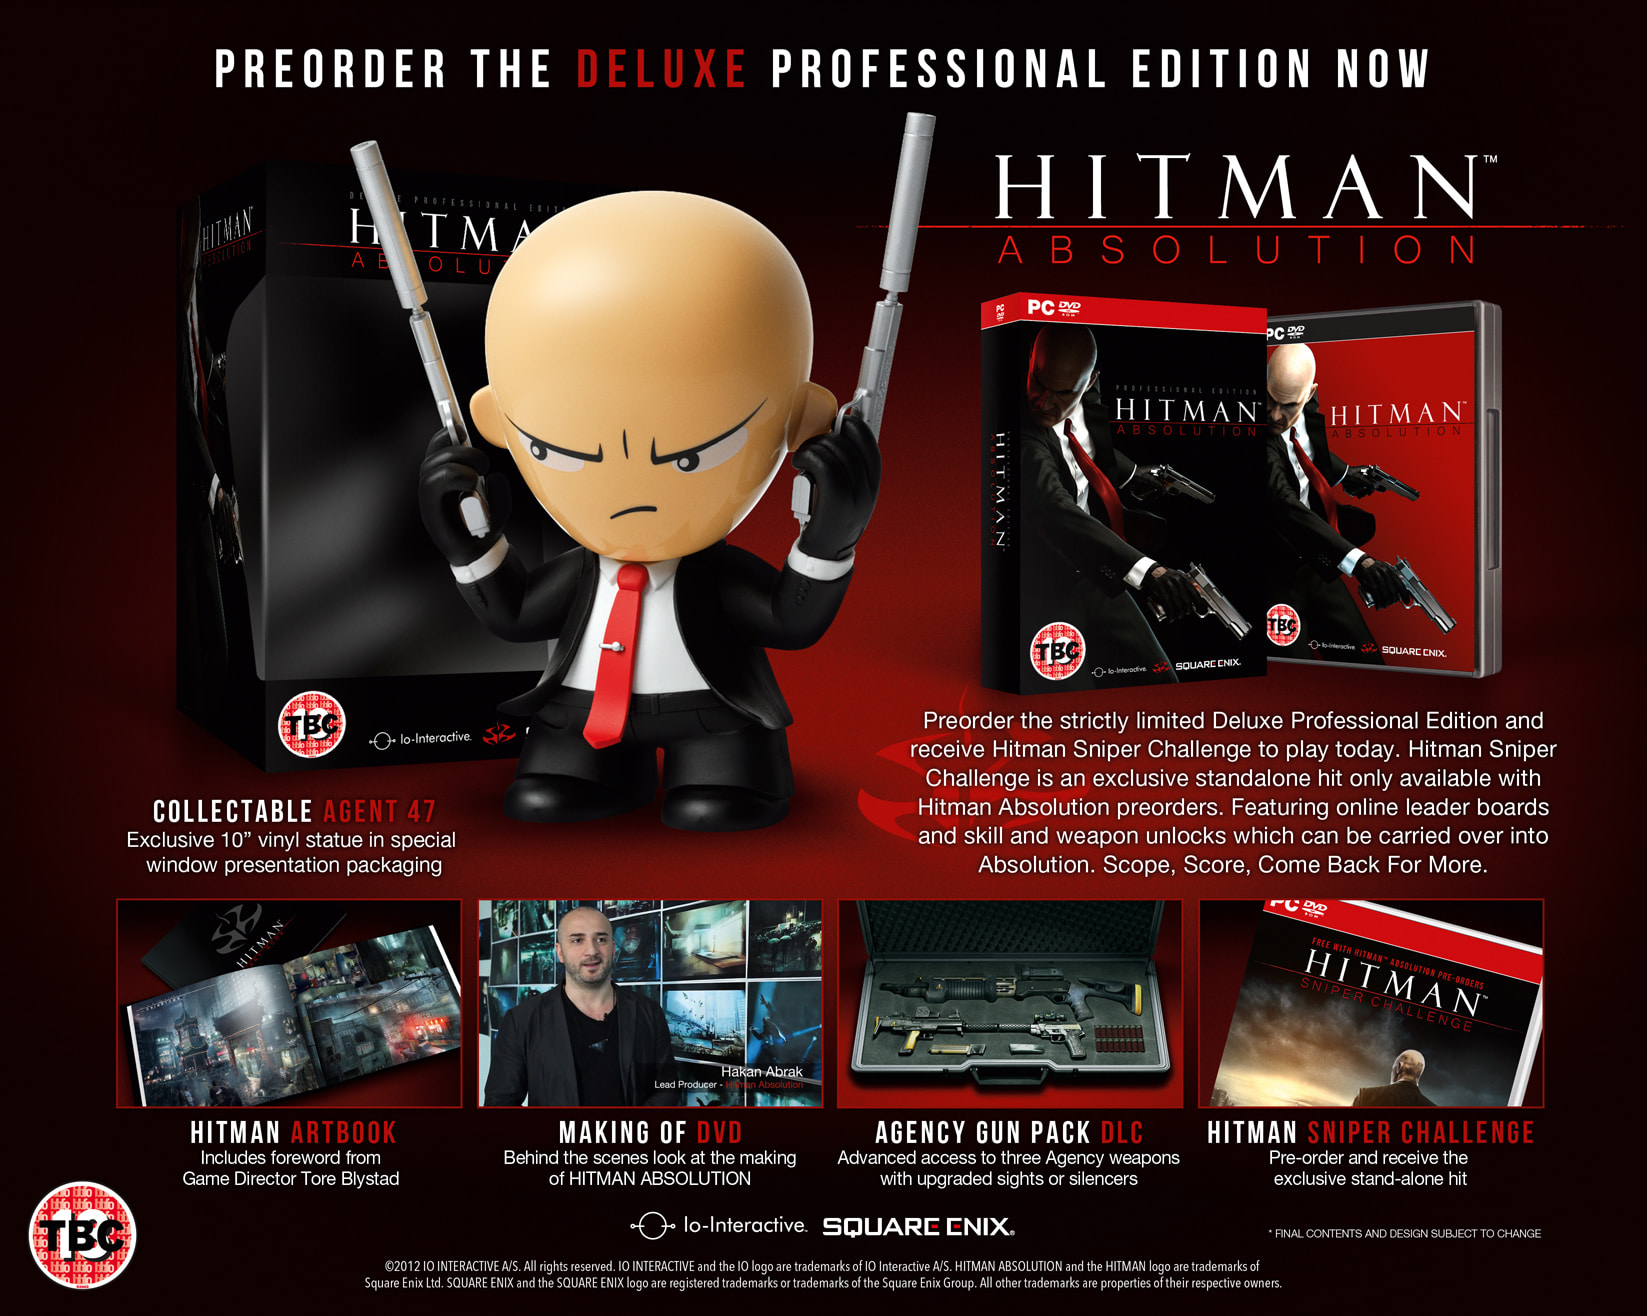 Hitman Absolution Deluxe Professional Edition for PC at GAME